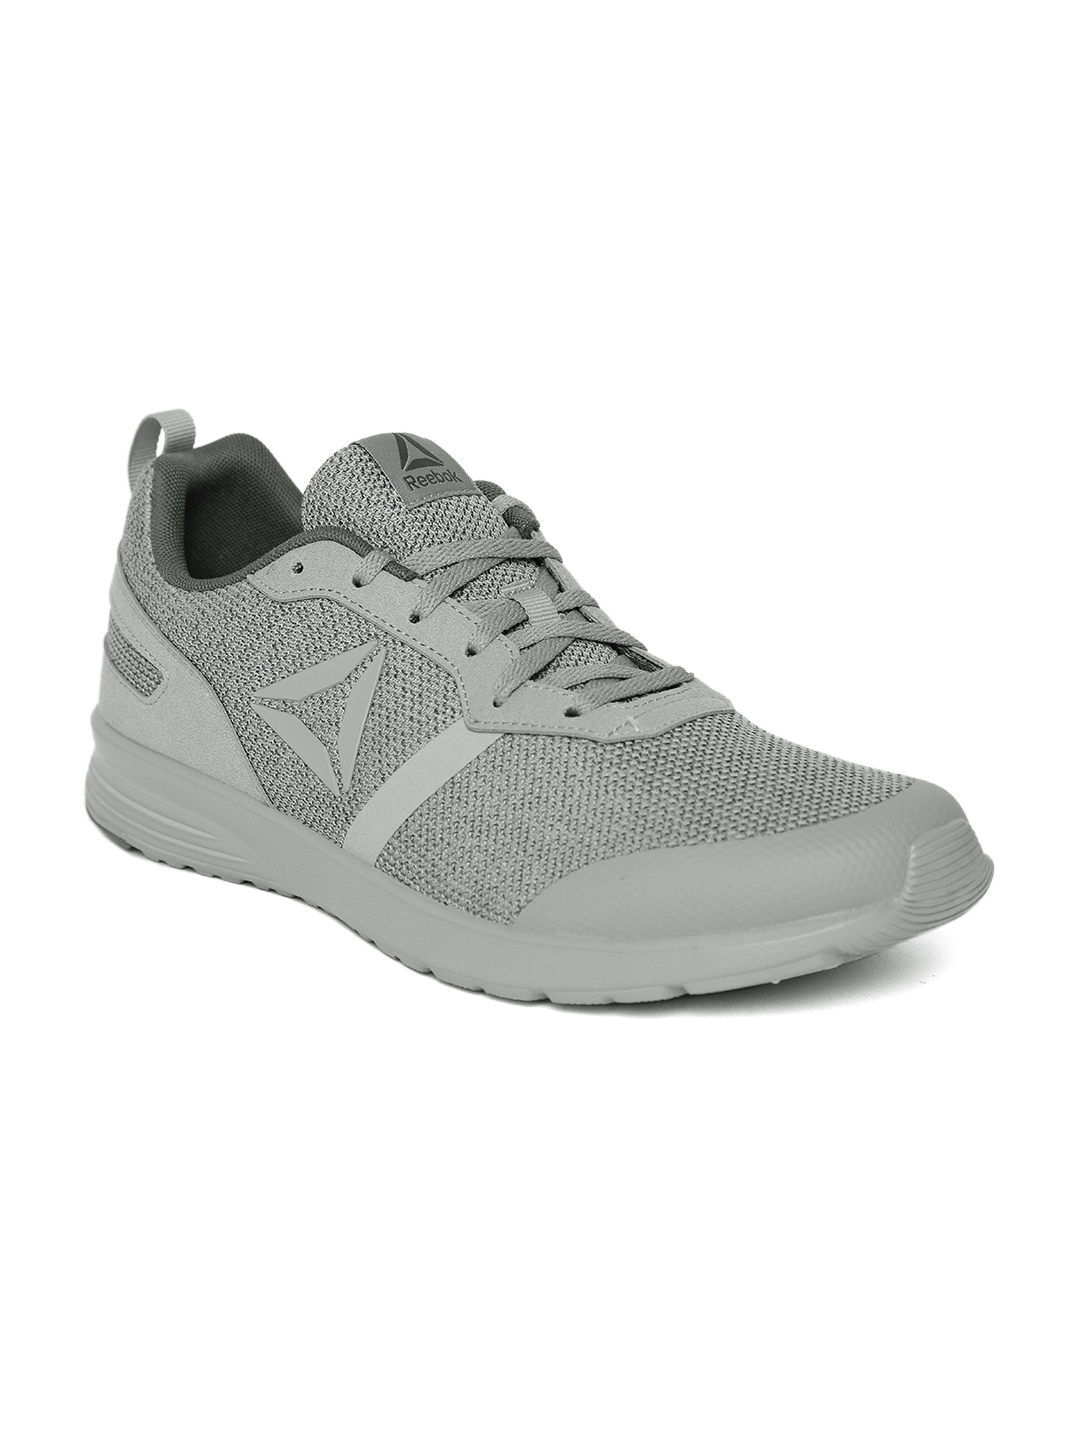 da53ae58ed77 Buy Reebok Men Grey FOSTER FLYER Running Shoes - Sports Shoes for ...